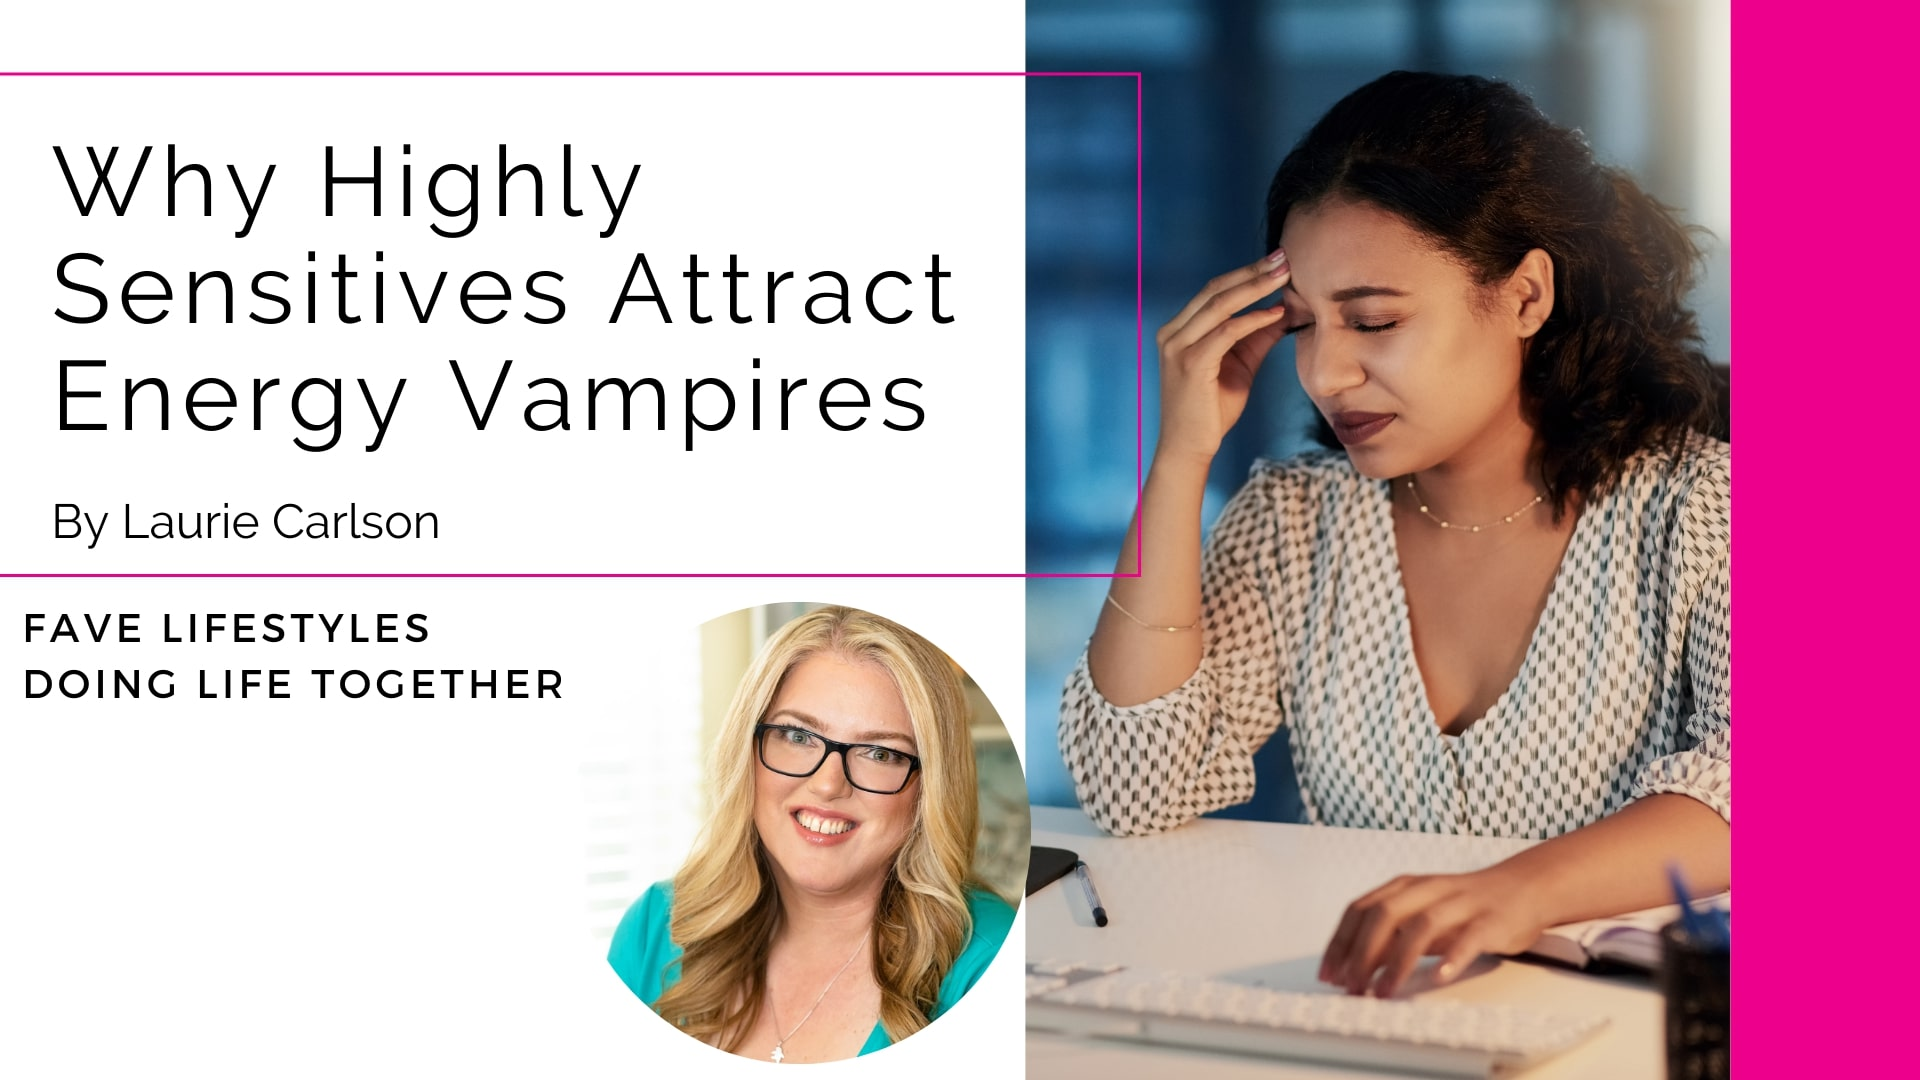 Why Highly Sensitives Attract Energy Vampires